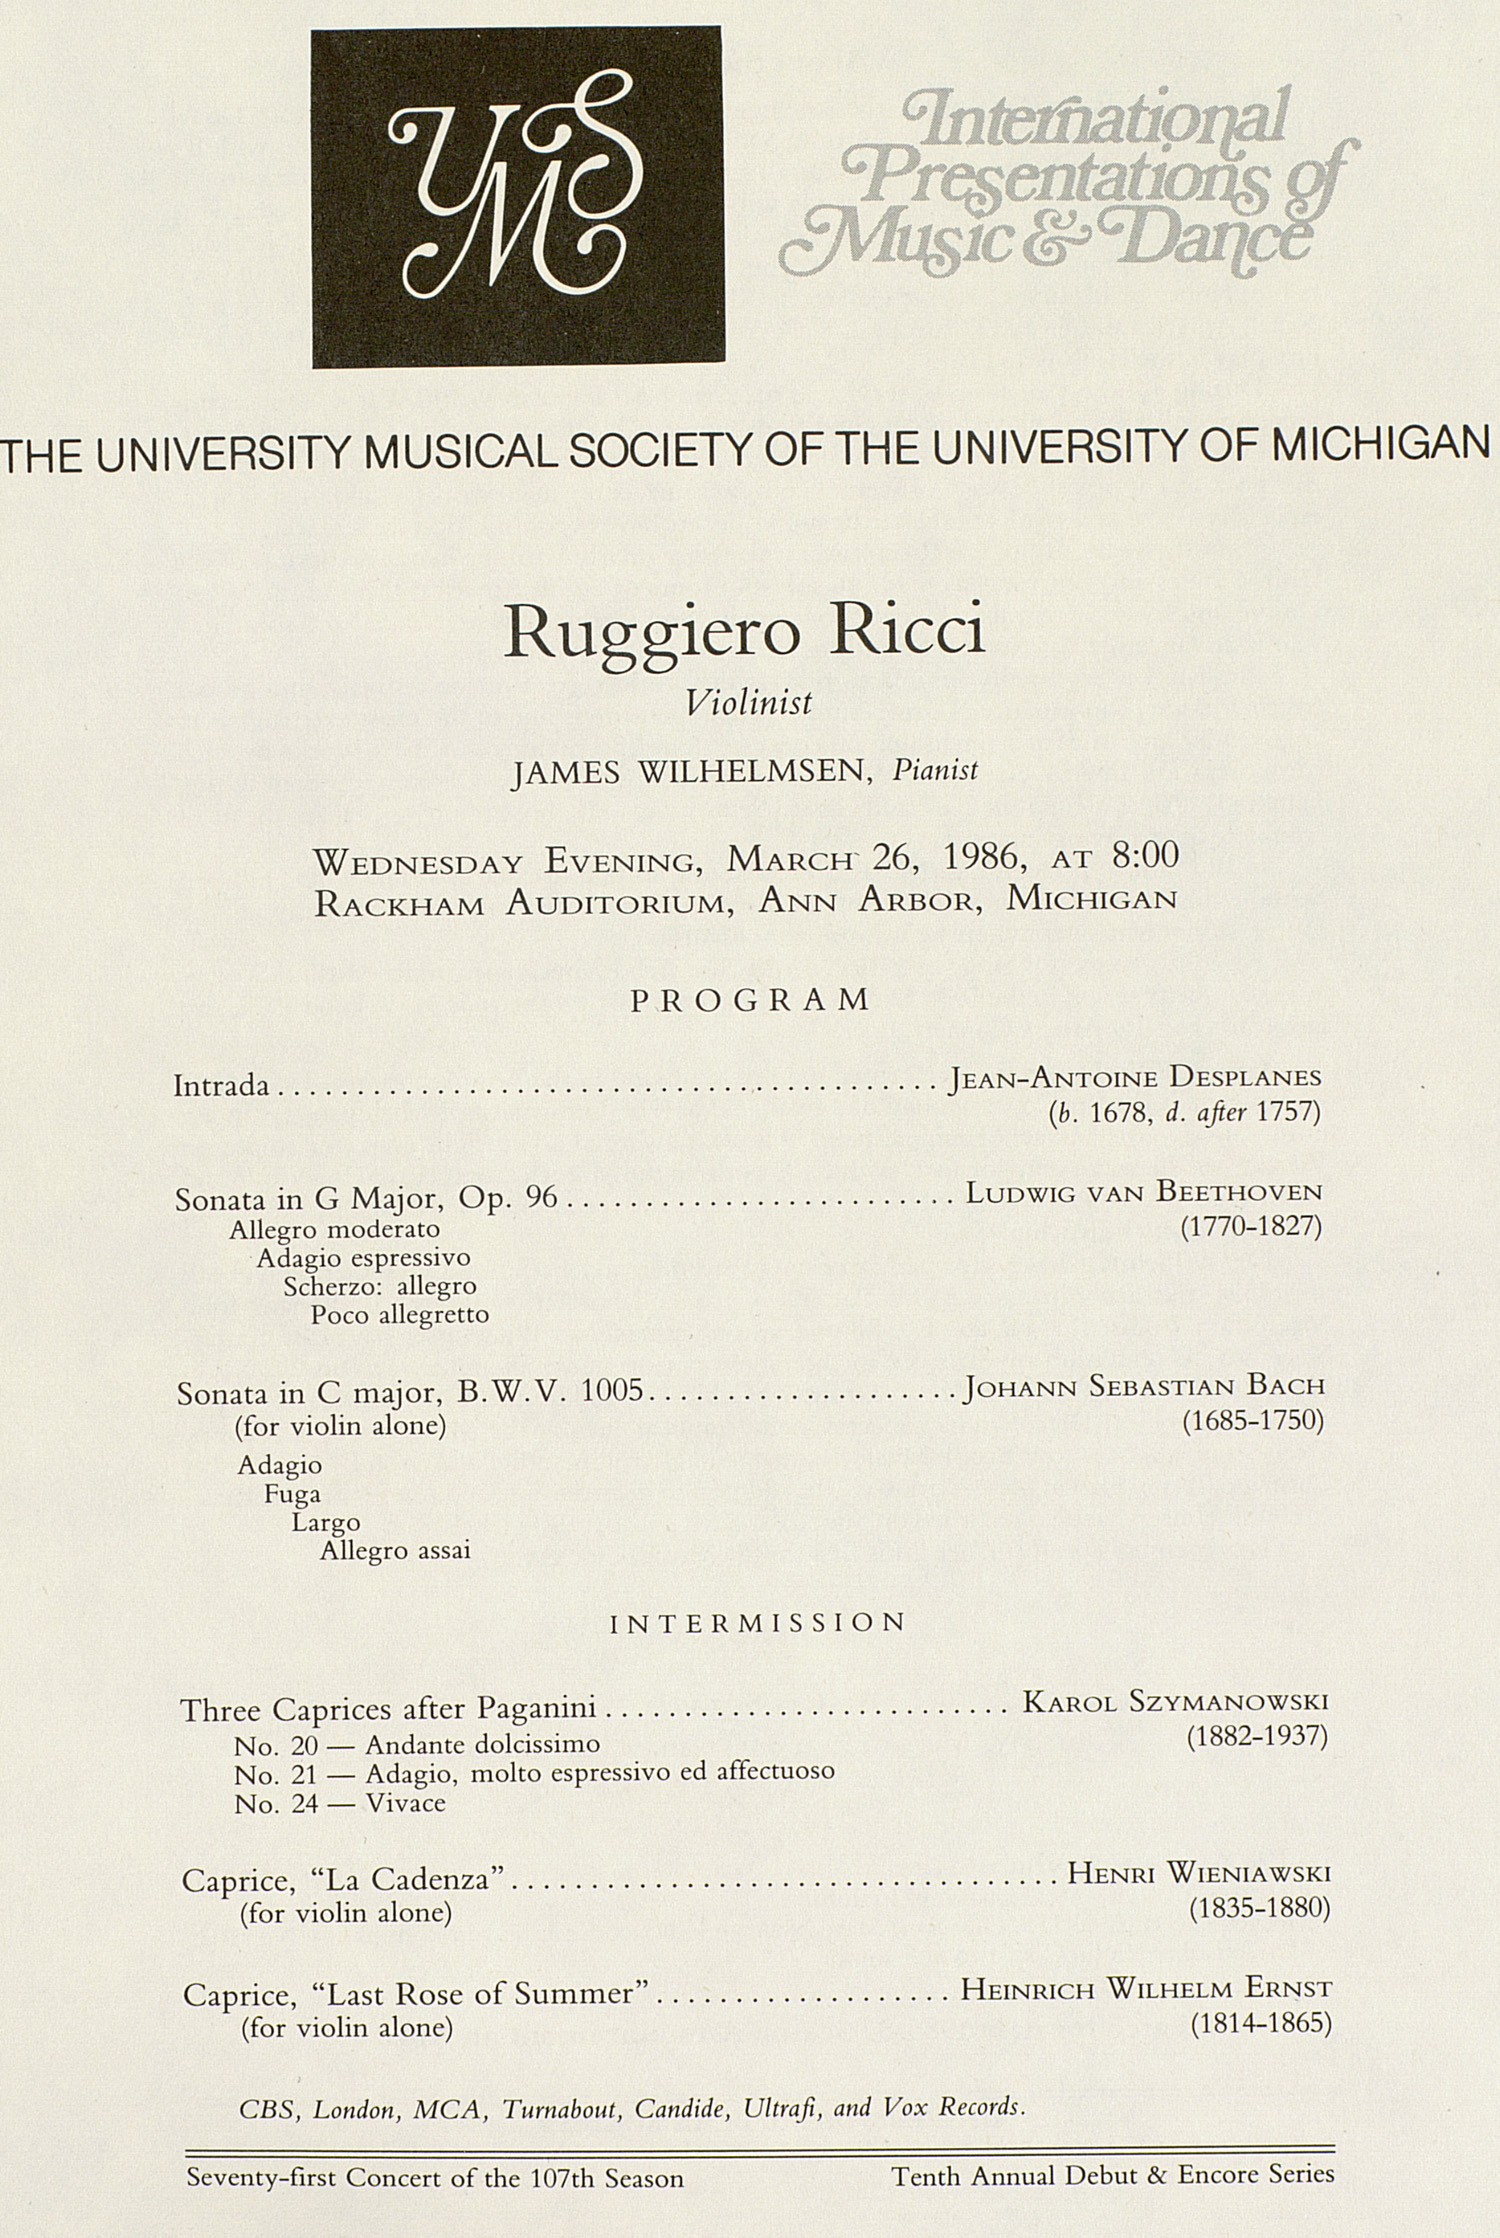 UMS Concert Program, March 26, 1986: International Presentations Of Music & Dance --  image